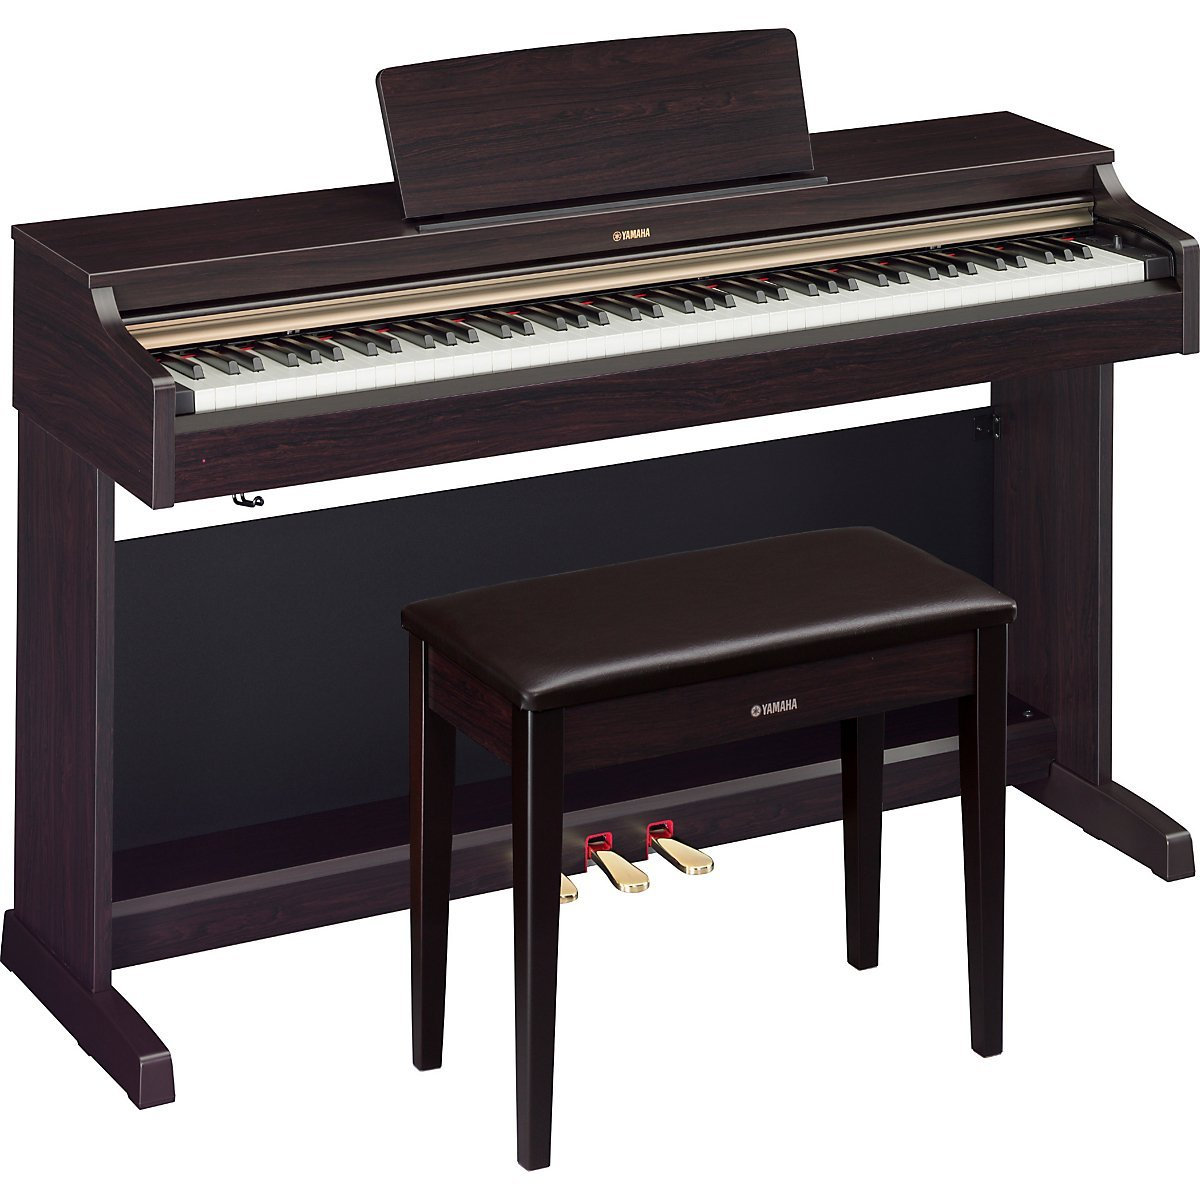 yamaha arius ydp 162 digital piano review best digital piano. Black Bedroom Furniture Sets. Home Design Ideas